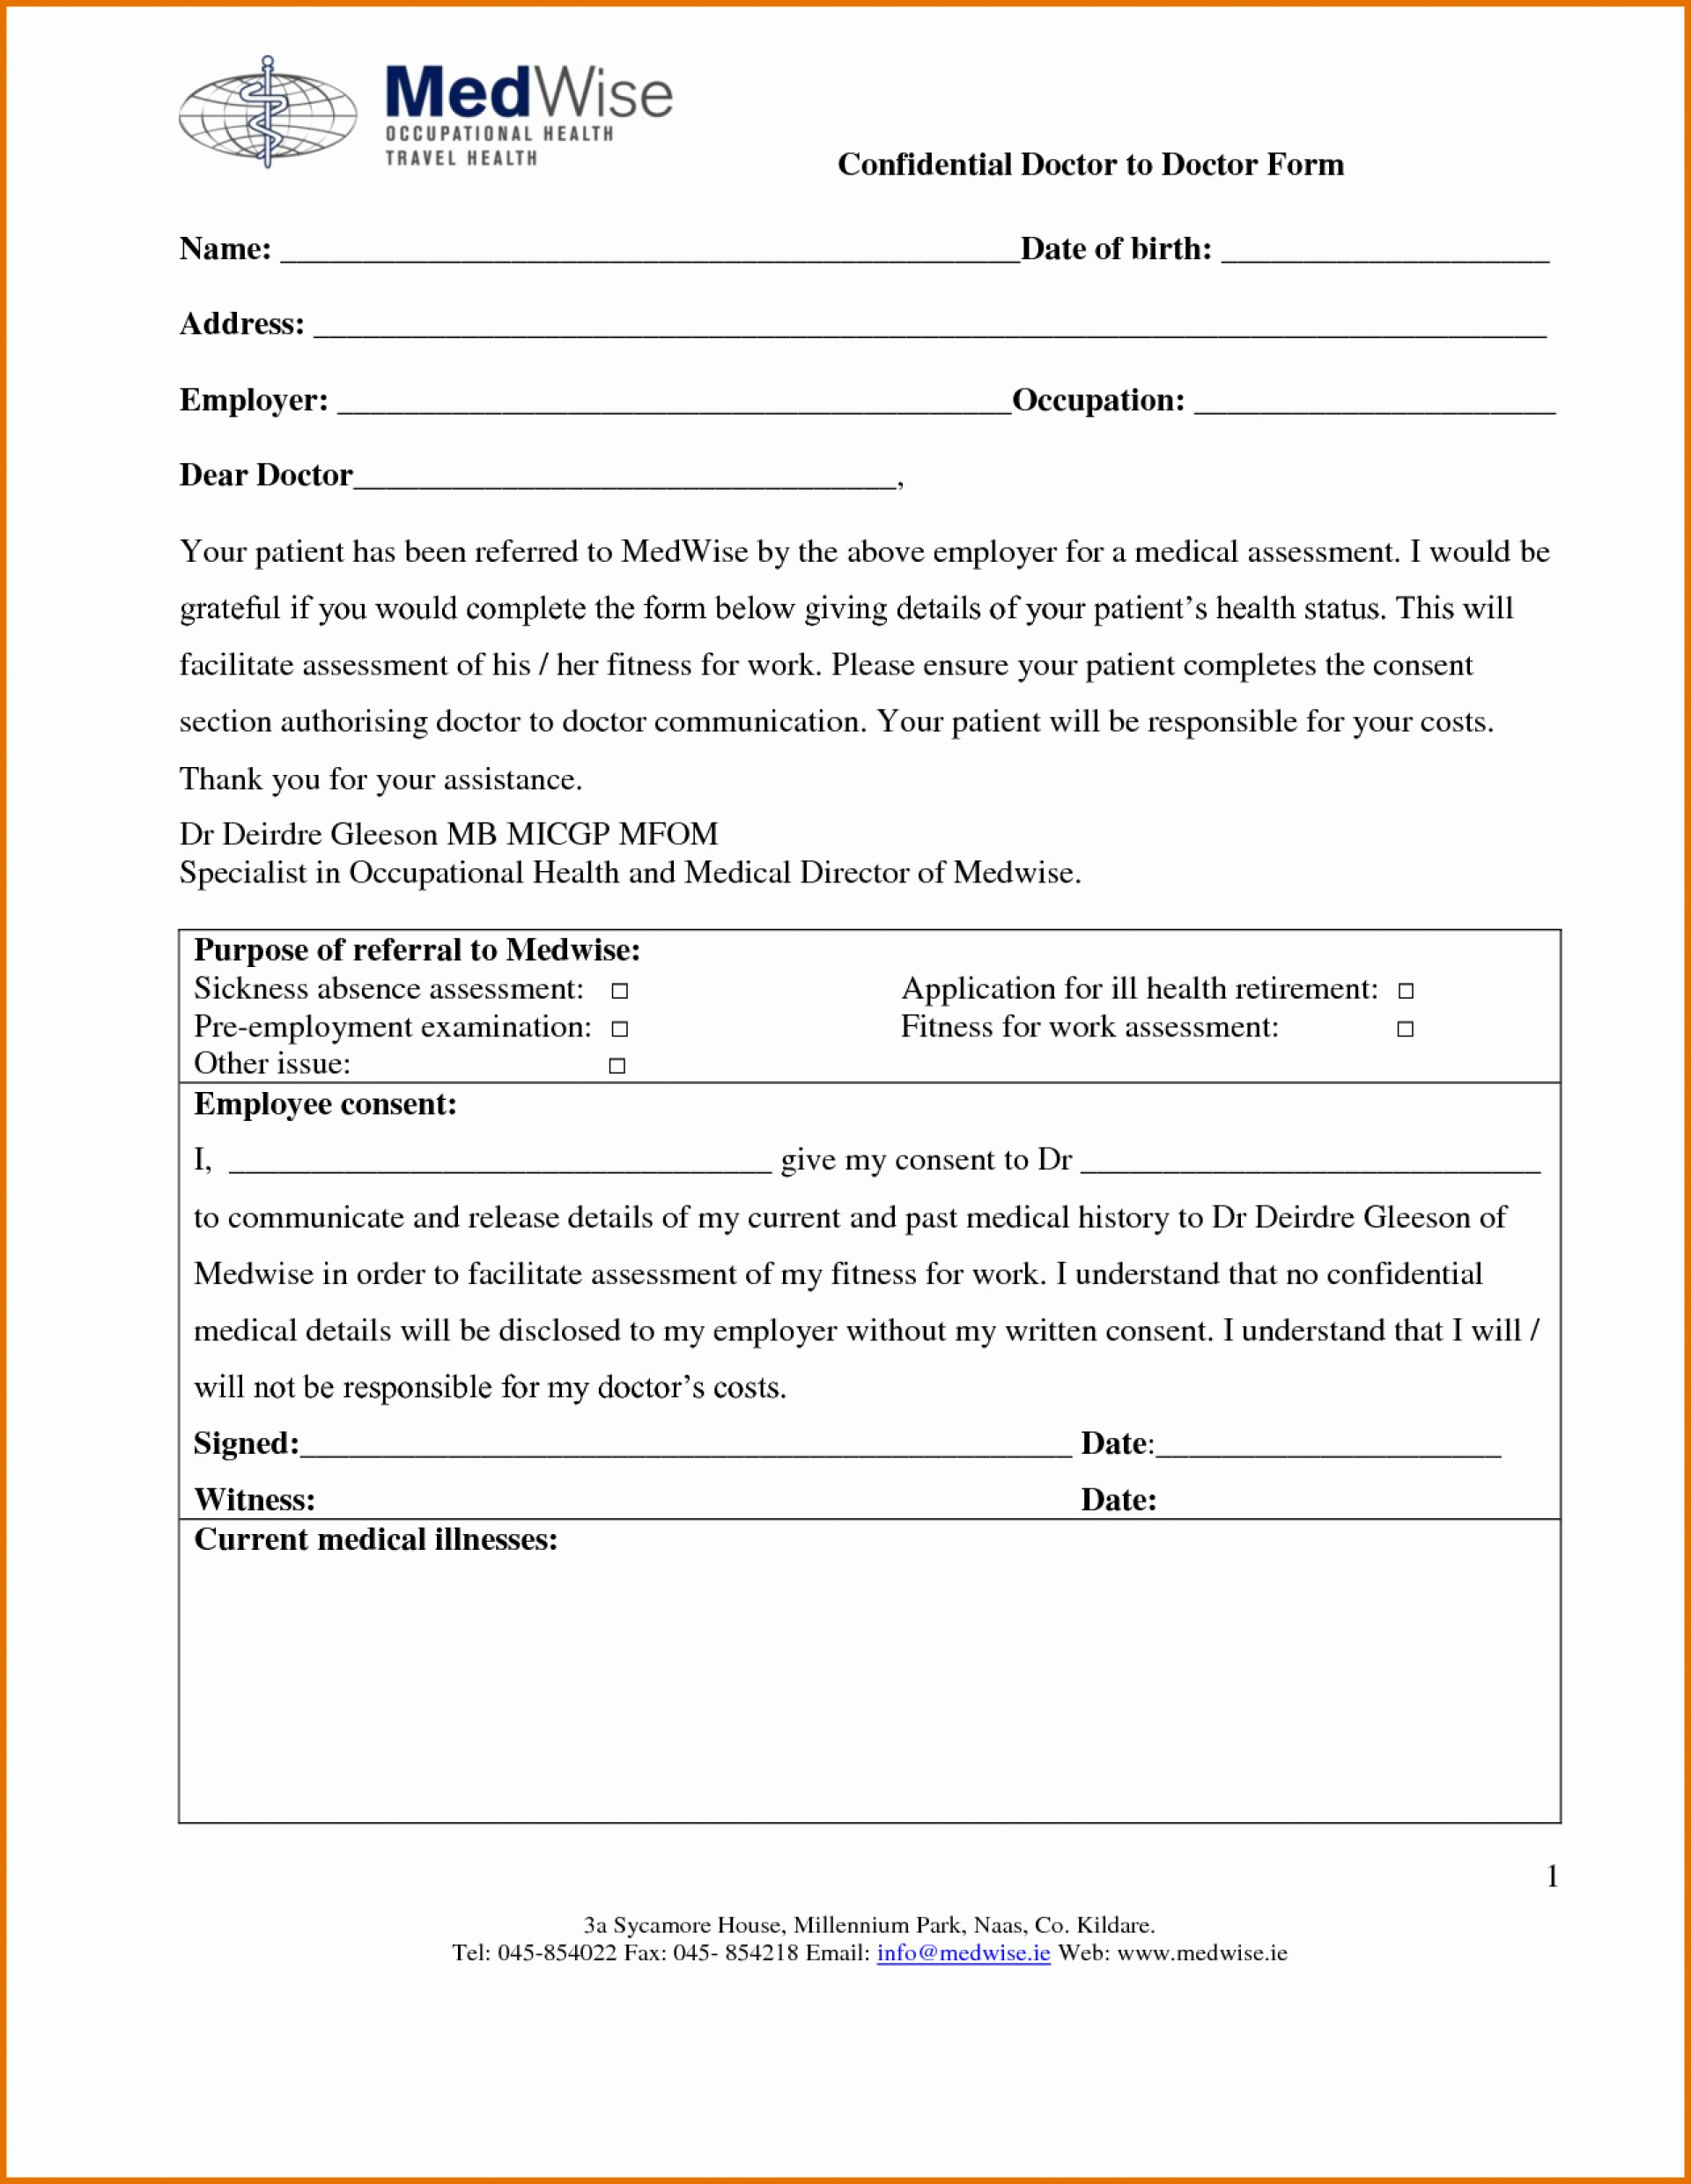 023 Doctors Excuse For School Fake Doctor Work Template Note Pdf - Free Printable Doctors Note For Work